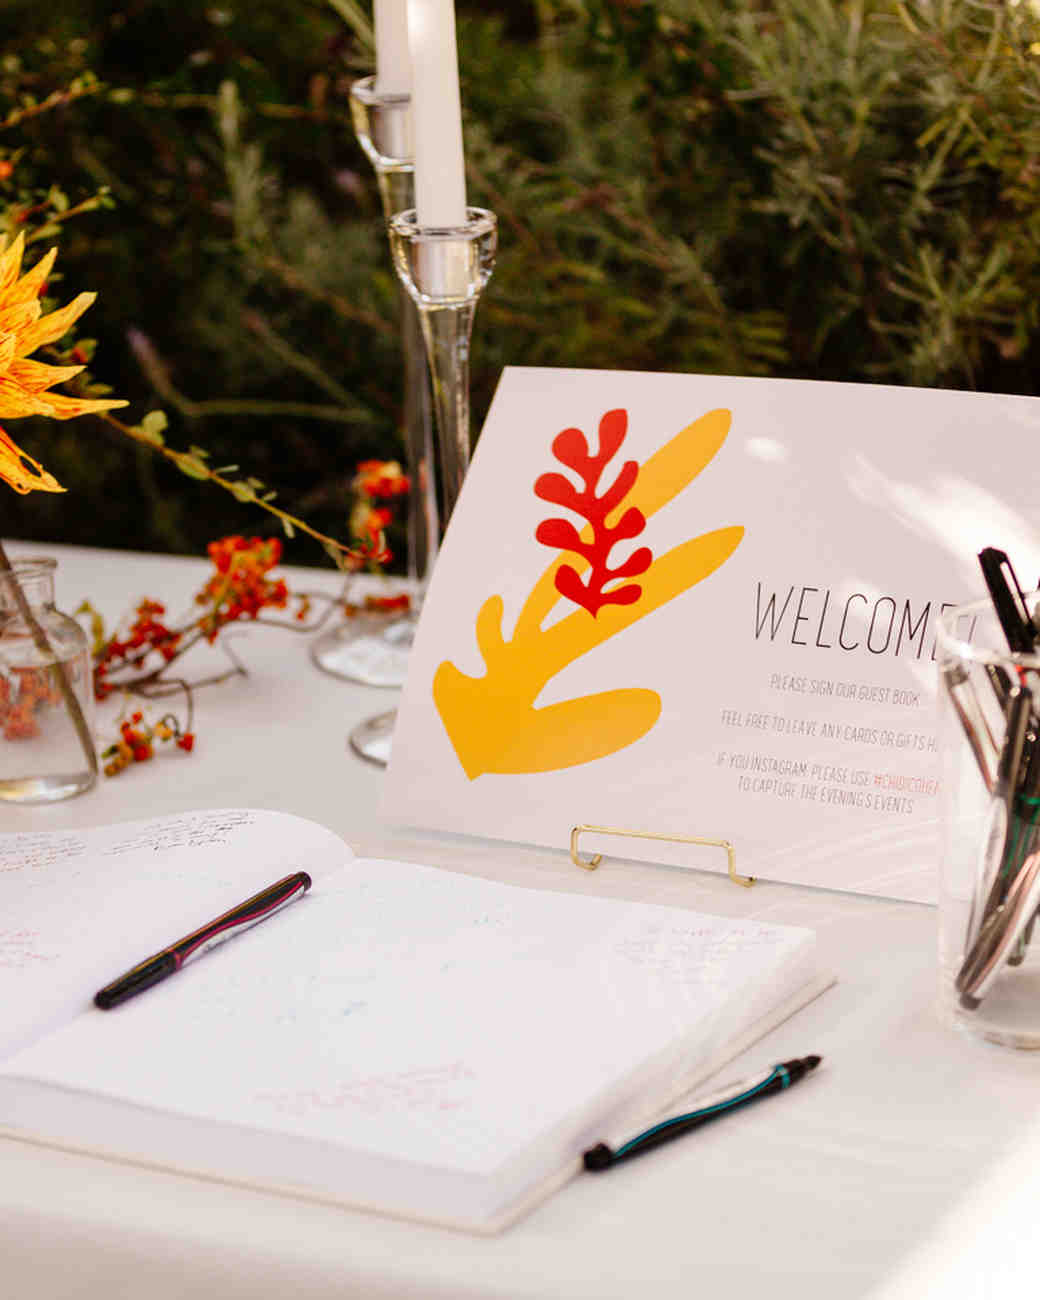 68 Guest Books from Real Weddings.